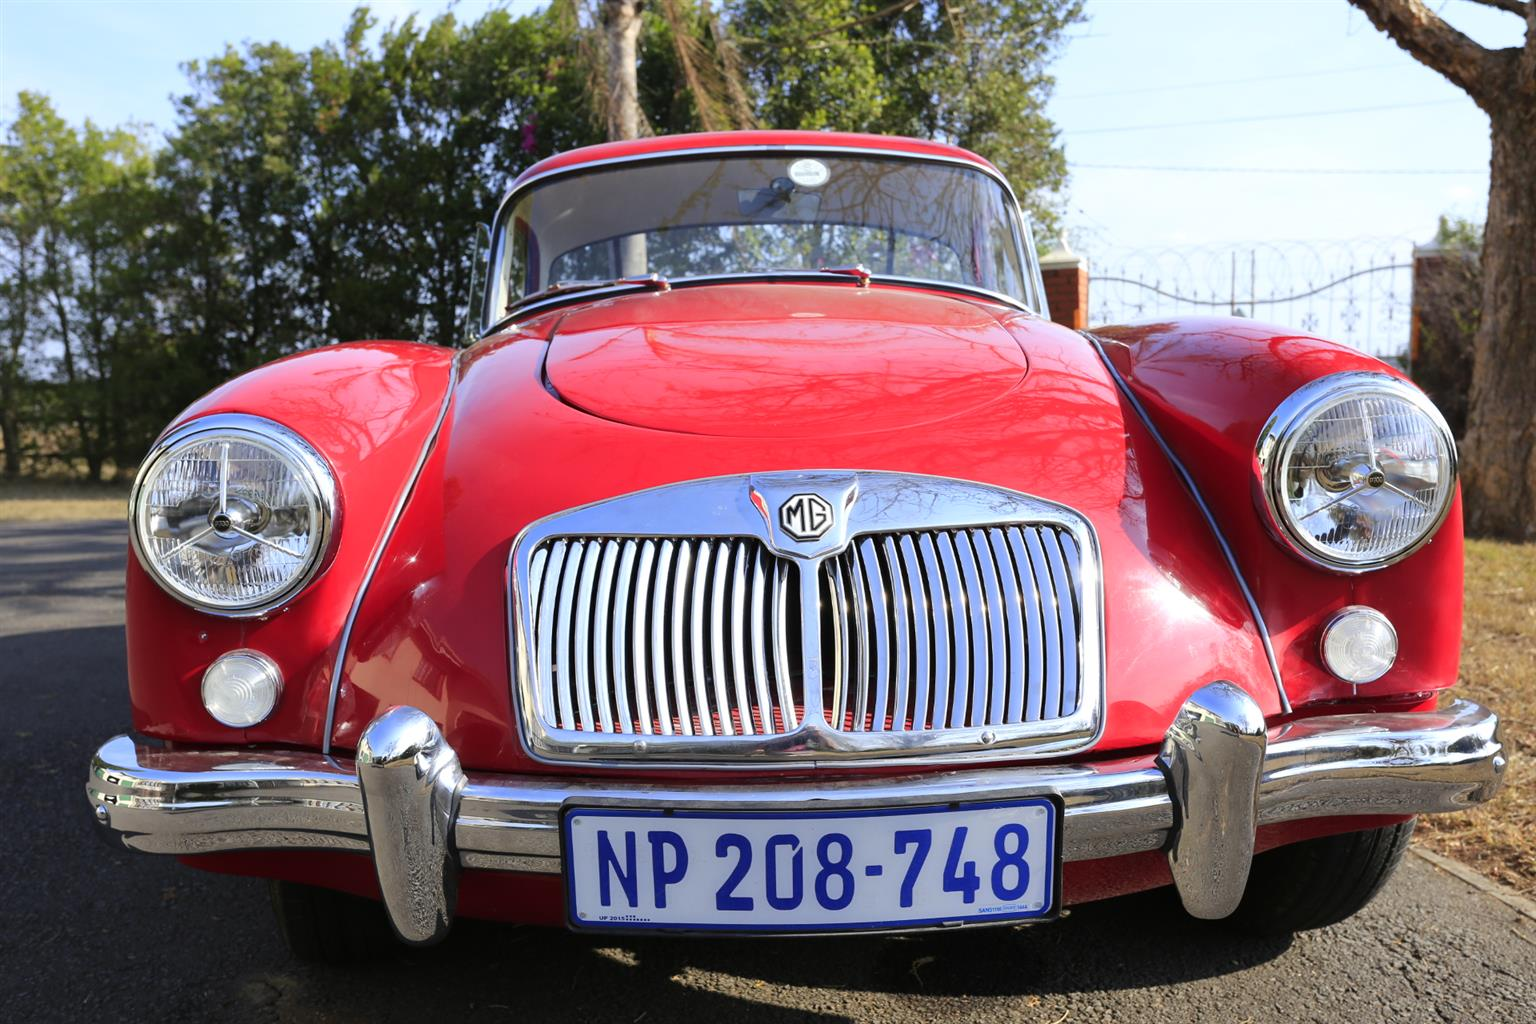 MG A 1500 Coupe - R350,000